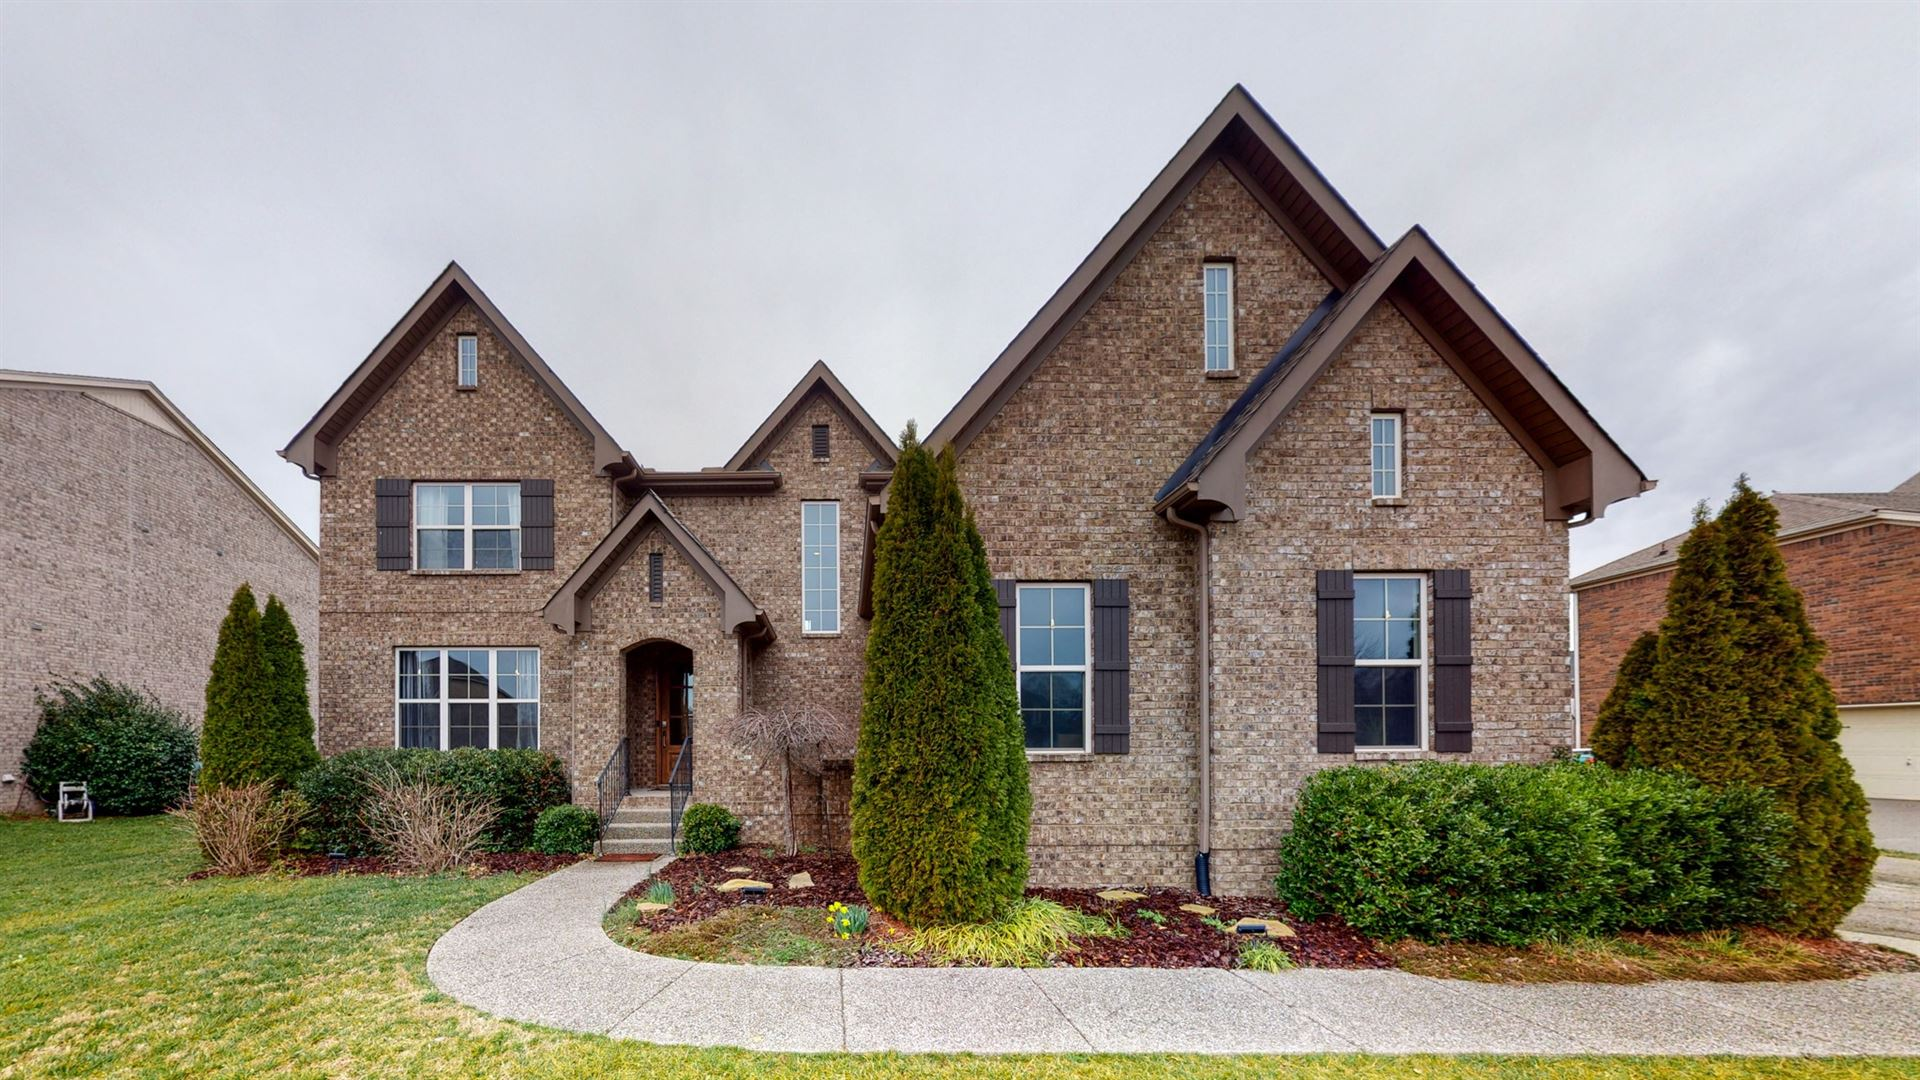 2050 Belshire Way, Spring Hill, TN 37174 - MLS#: 2231400